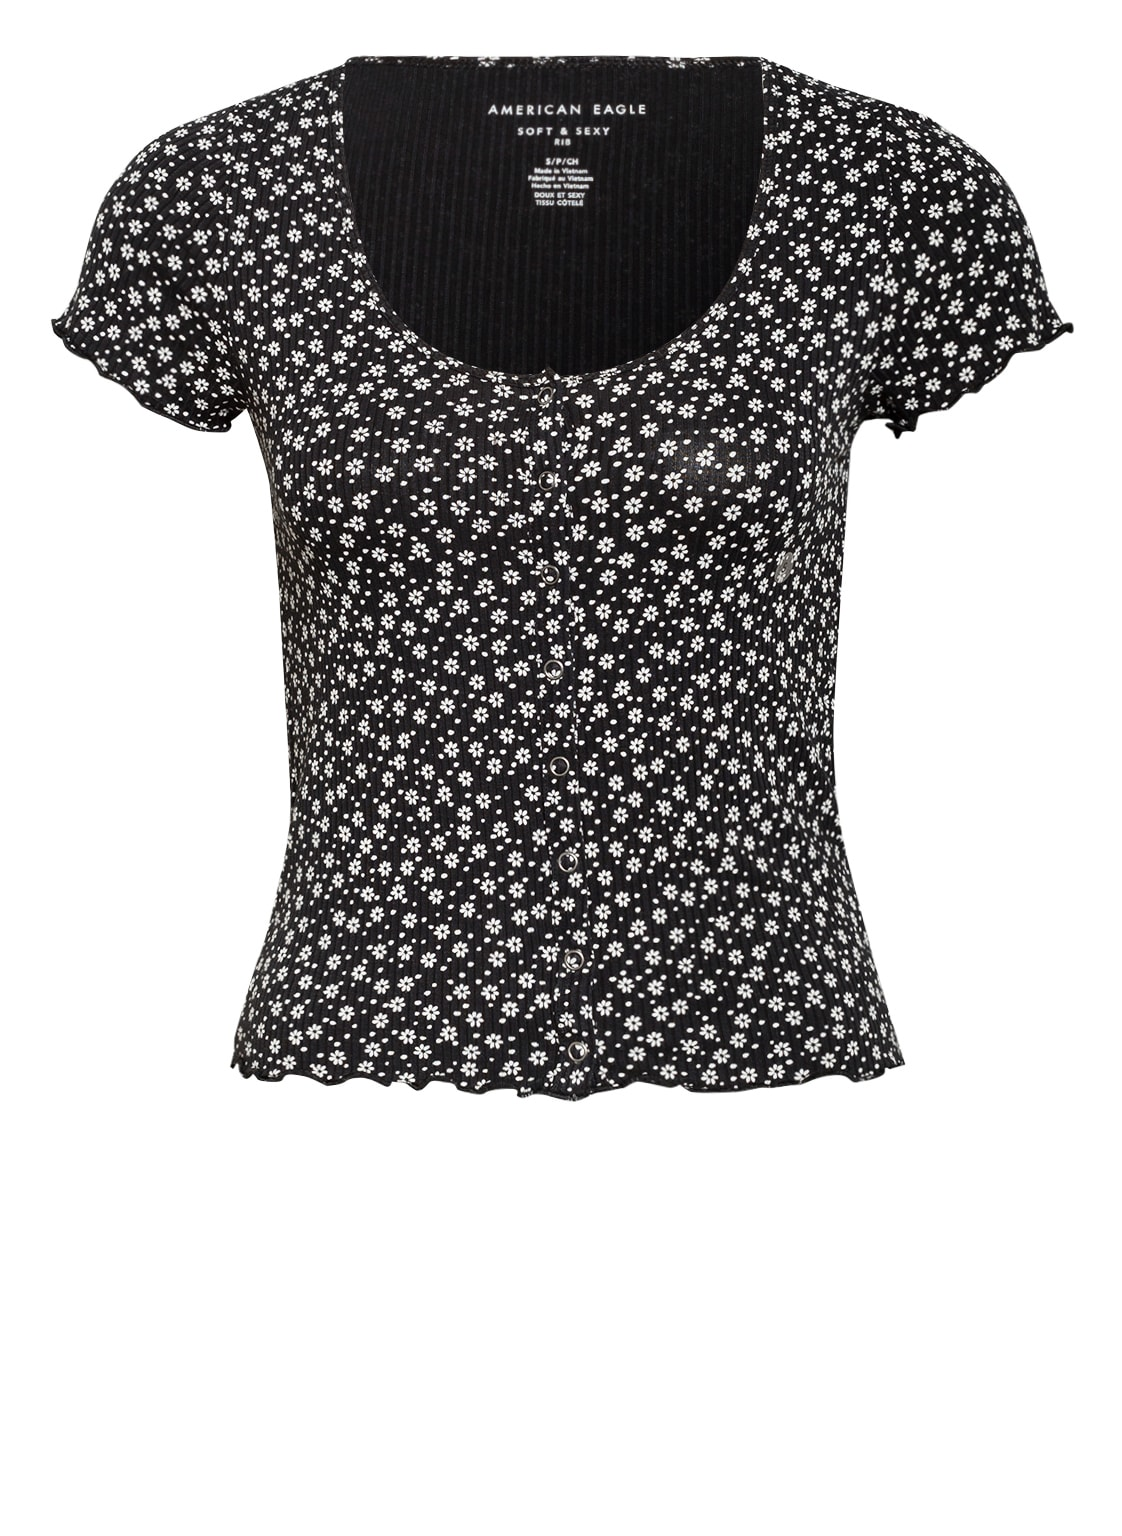 Image of American Eagle Cropped-Shirt schwarz